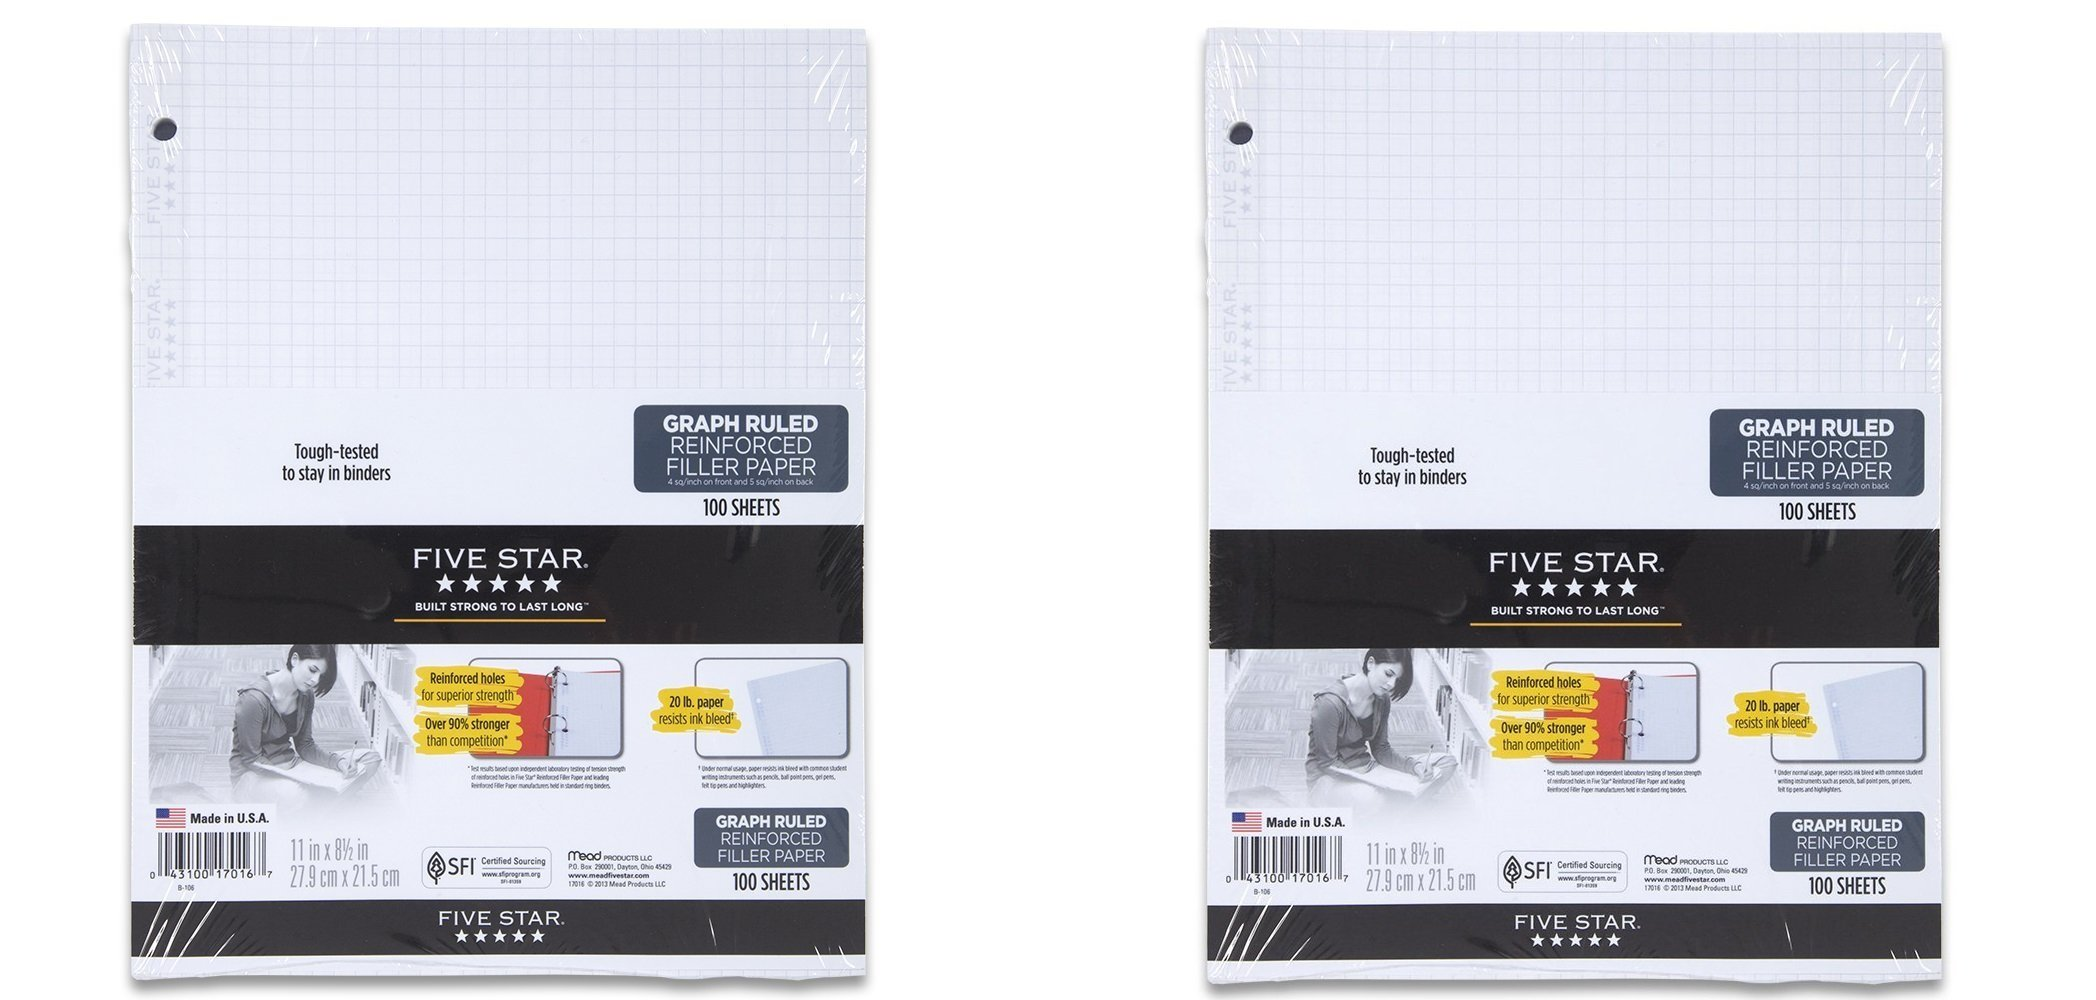 Five Star Reinforced Graph Filler Paper, Graph Ruled, Loose-leaf, 11 x 8.5 Inch Sheet Size, 100 Sheets/Pack (17016) (2-Pack) by Five Star